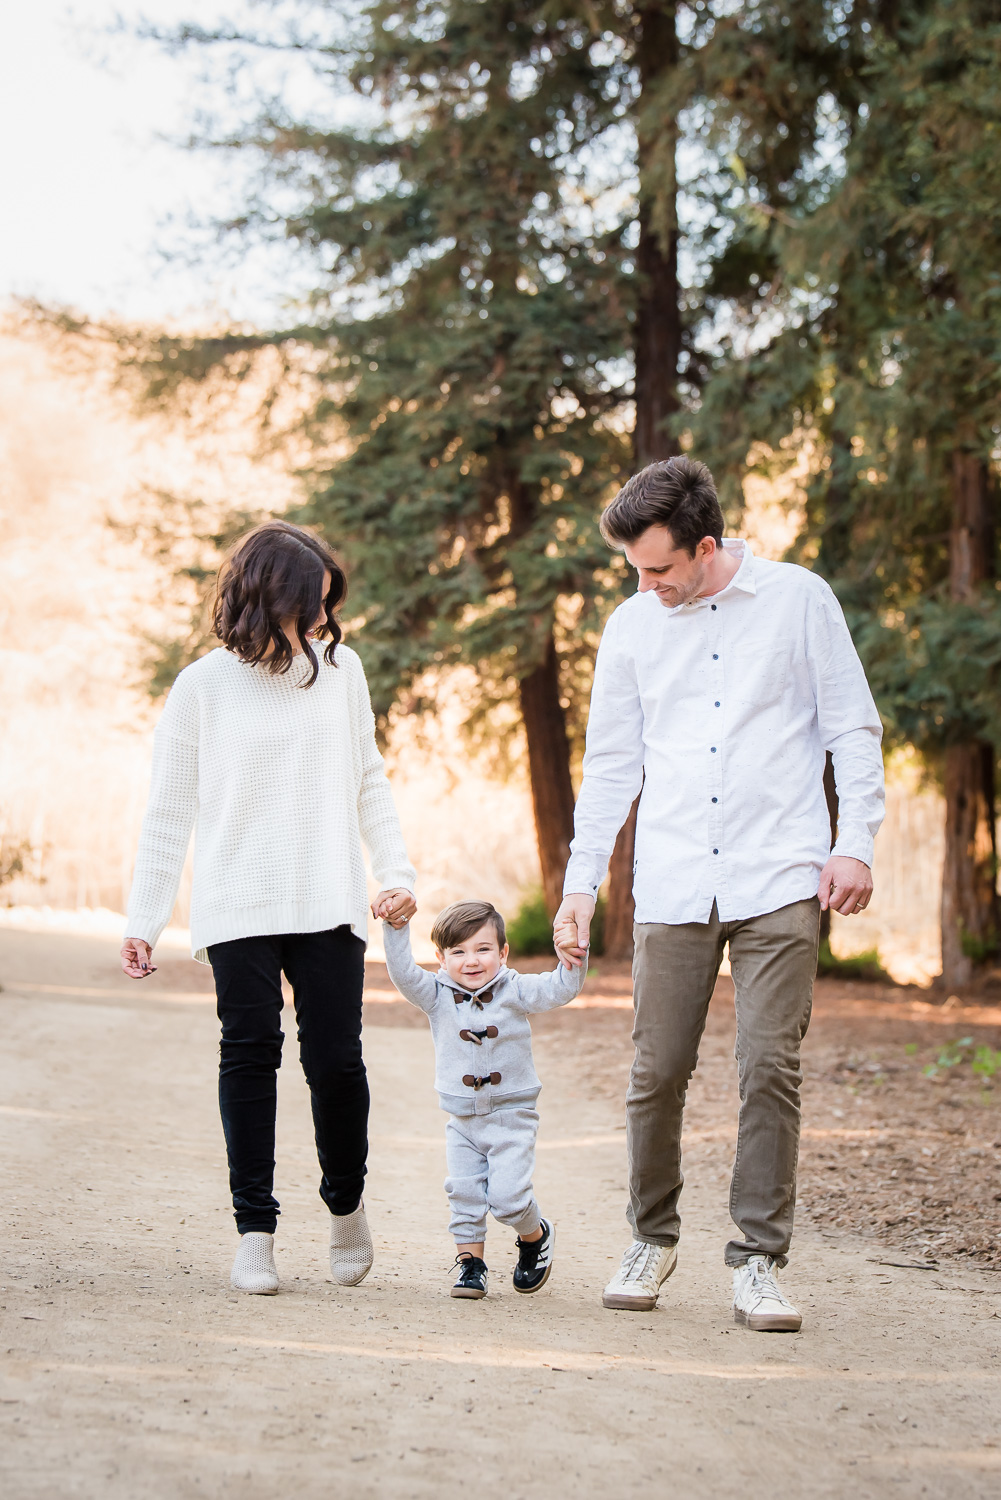 mini_fall_family_session_orange_county_irvine_newport_costa_mesa_children_child_photos_carbon_canyon  (2).jpg